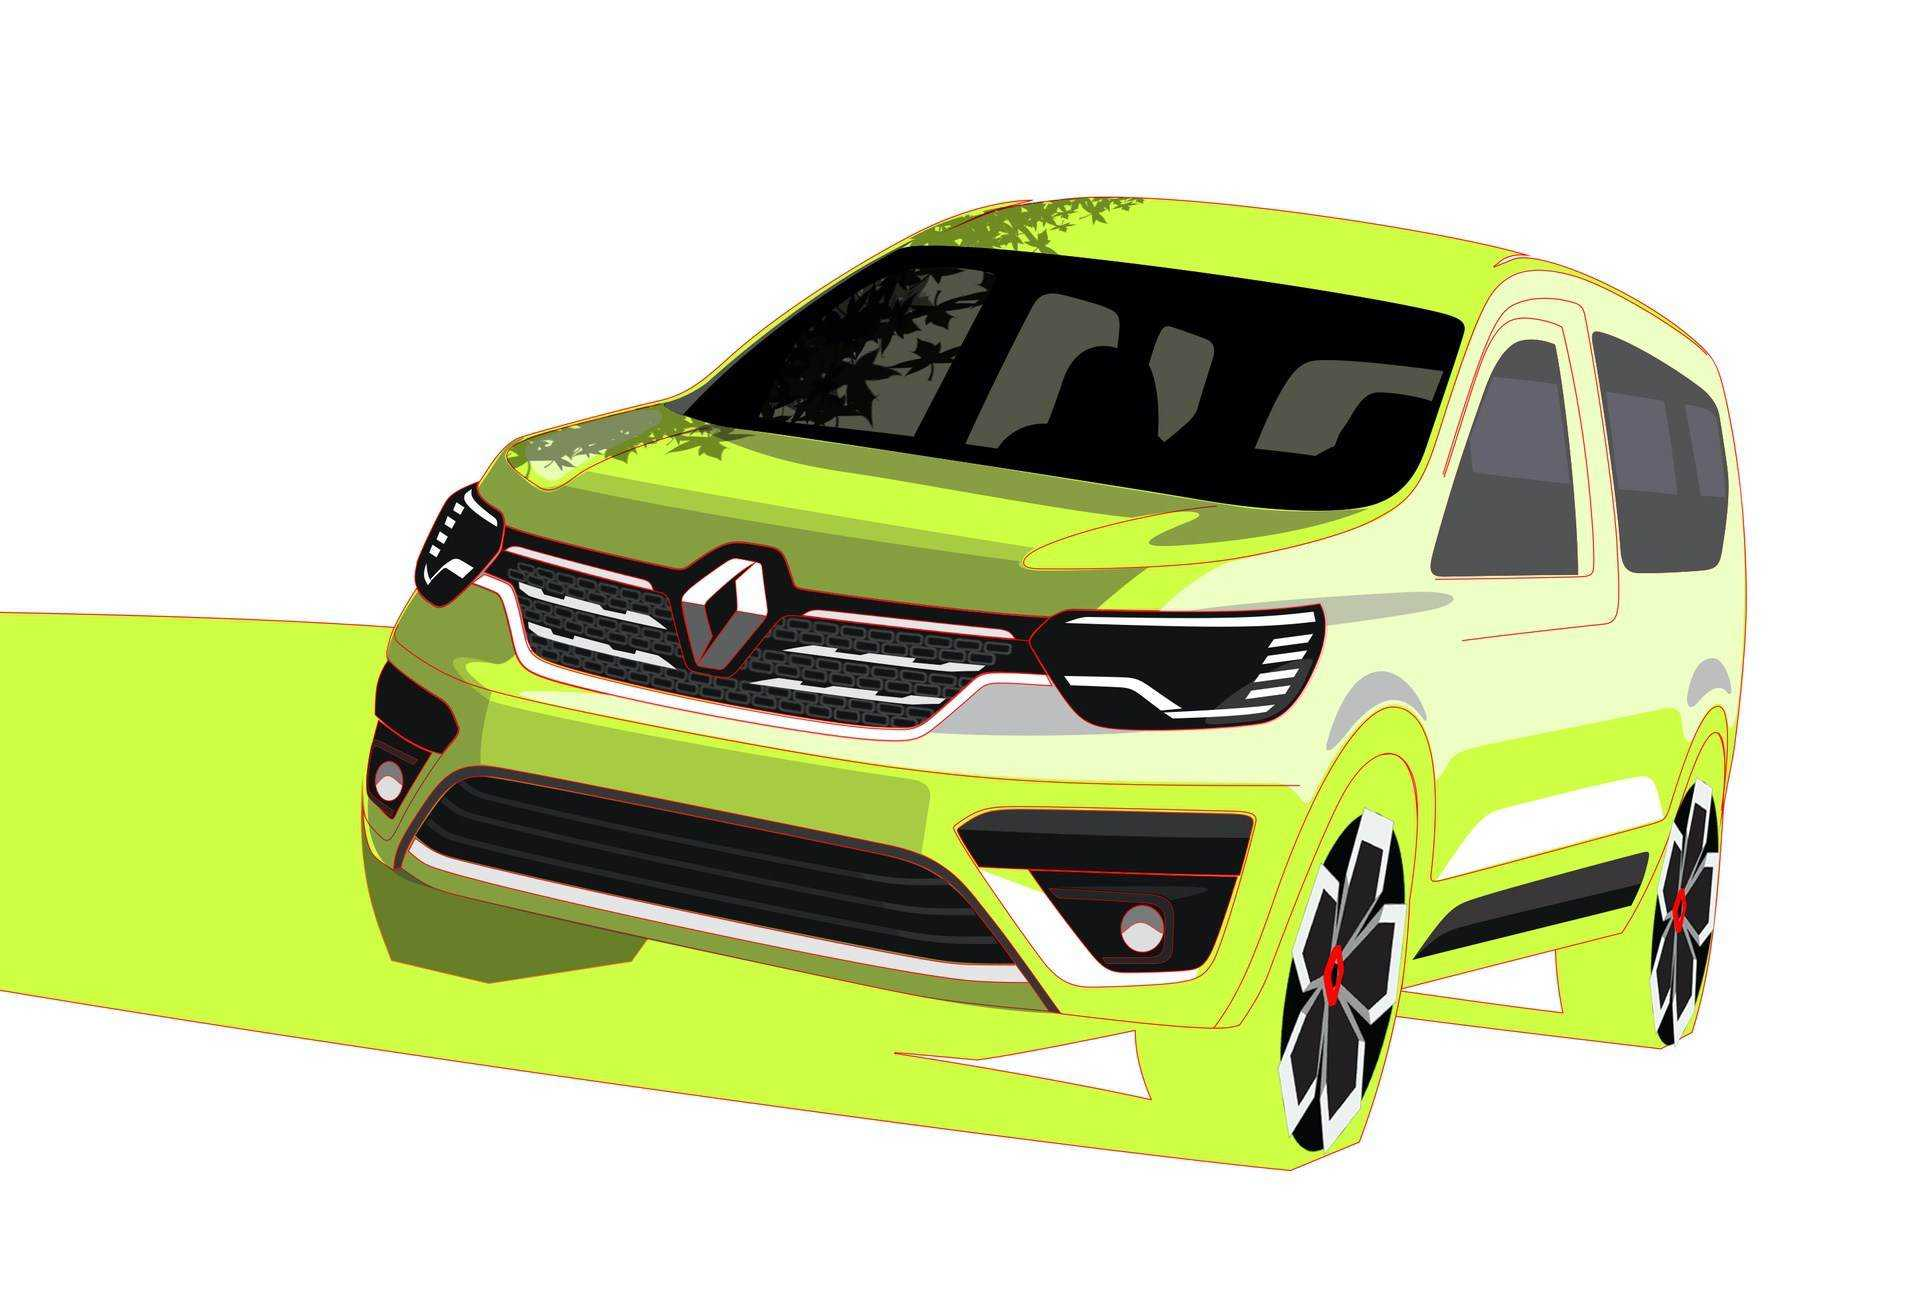 34-2020-THE-CREATION-DESIGN-OF-NEW-RENAULT-EXPRESS